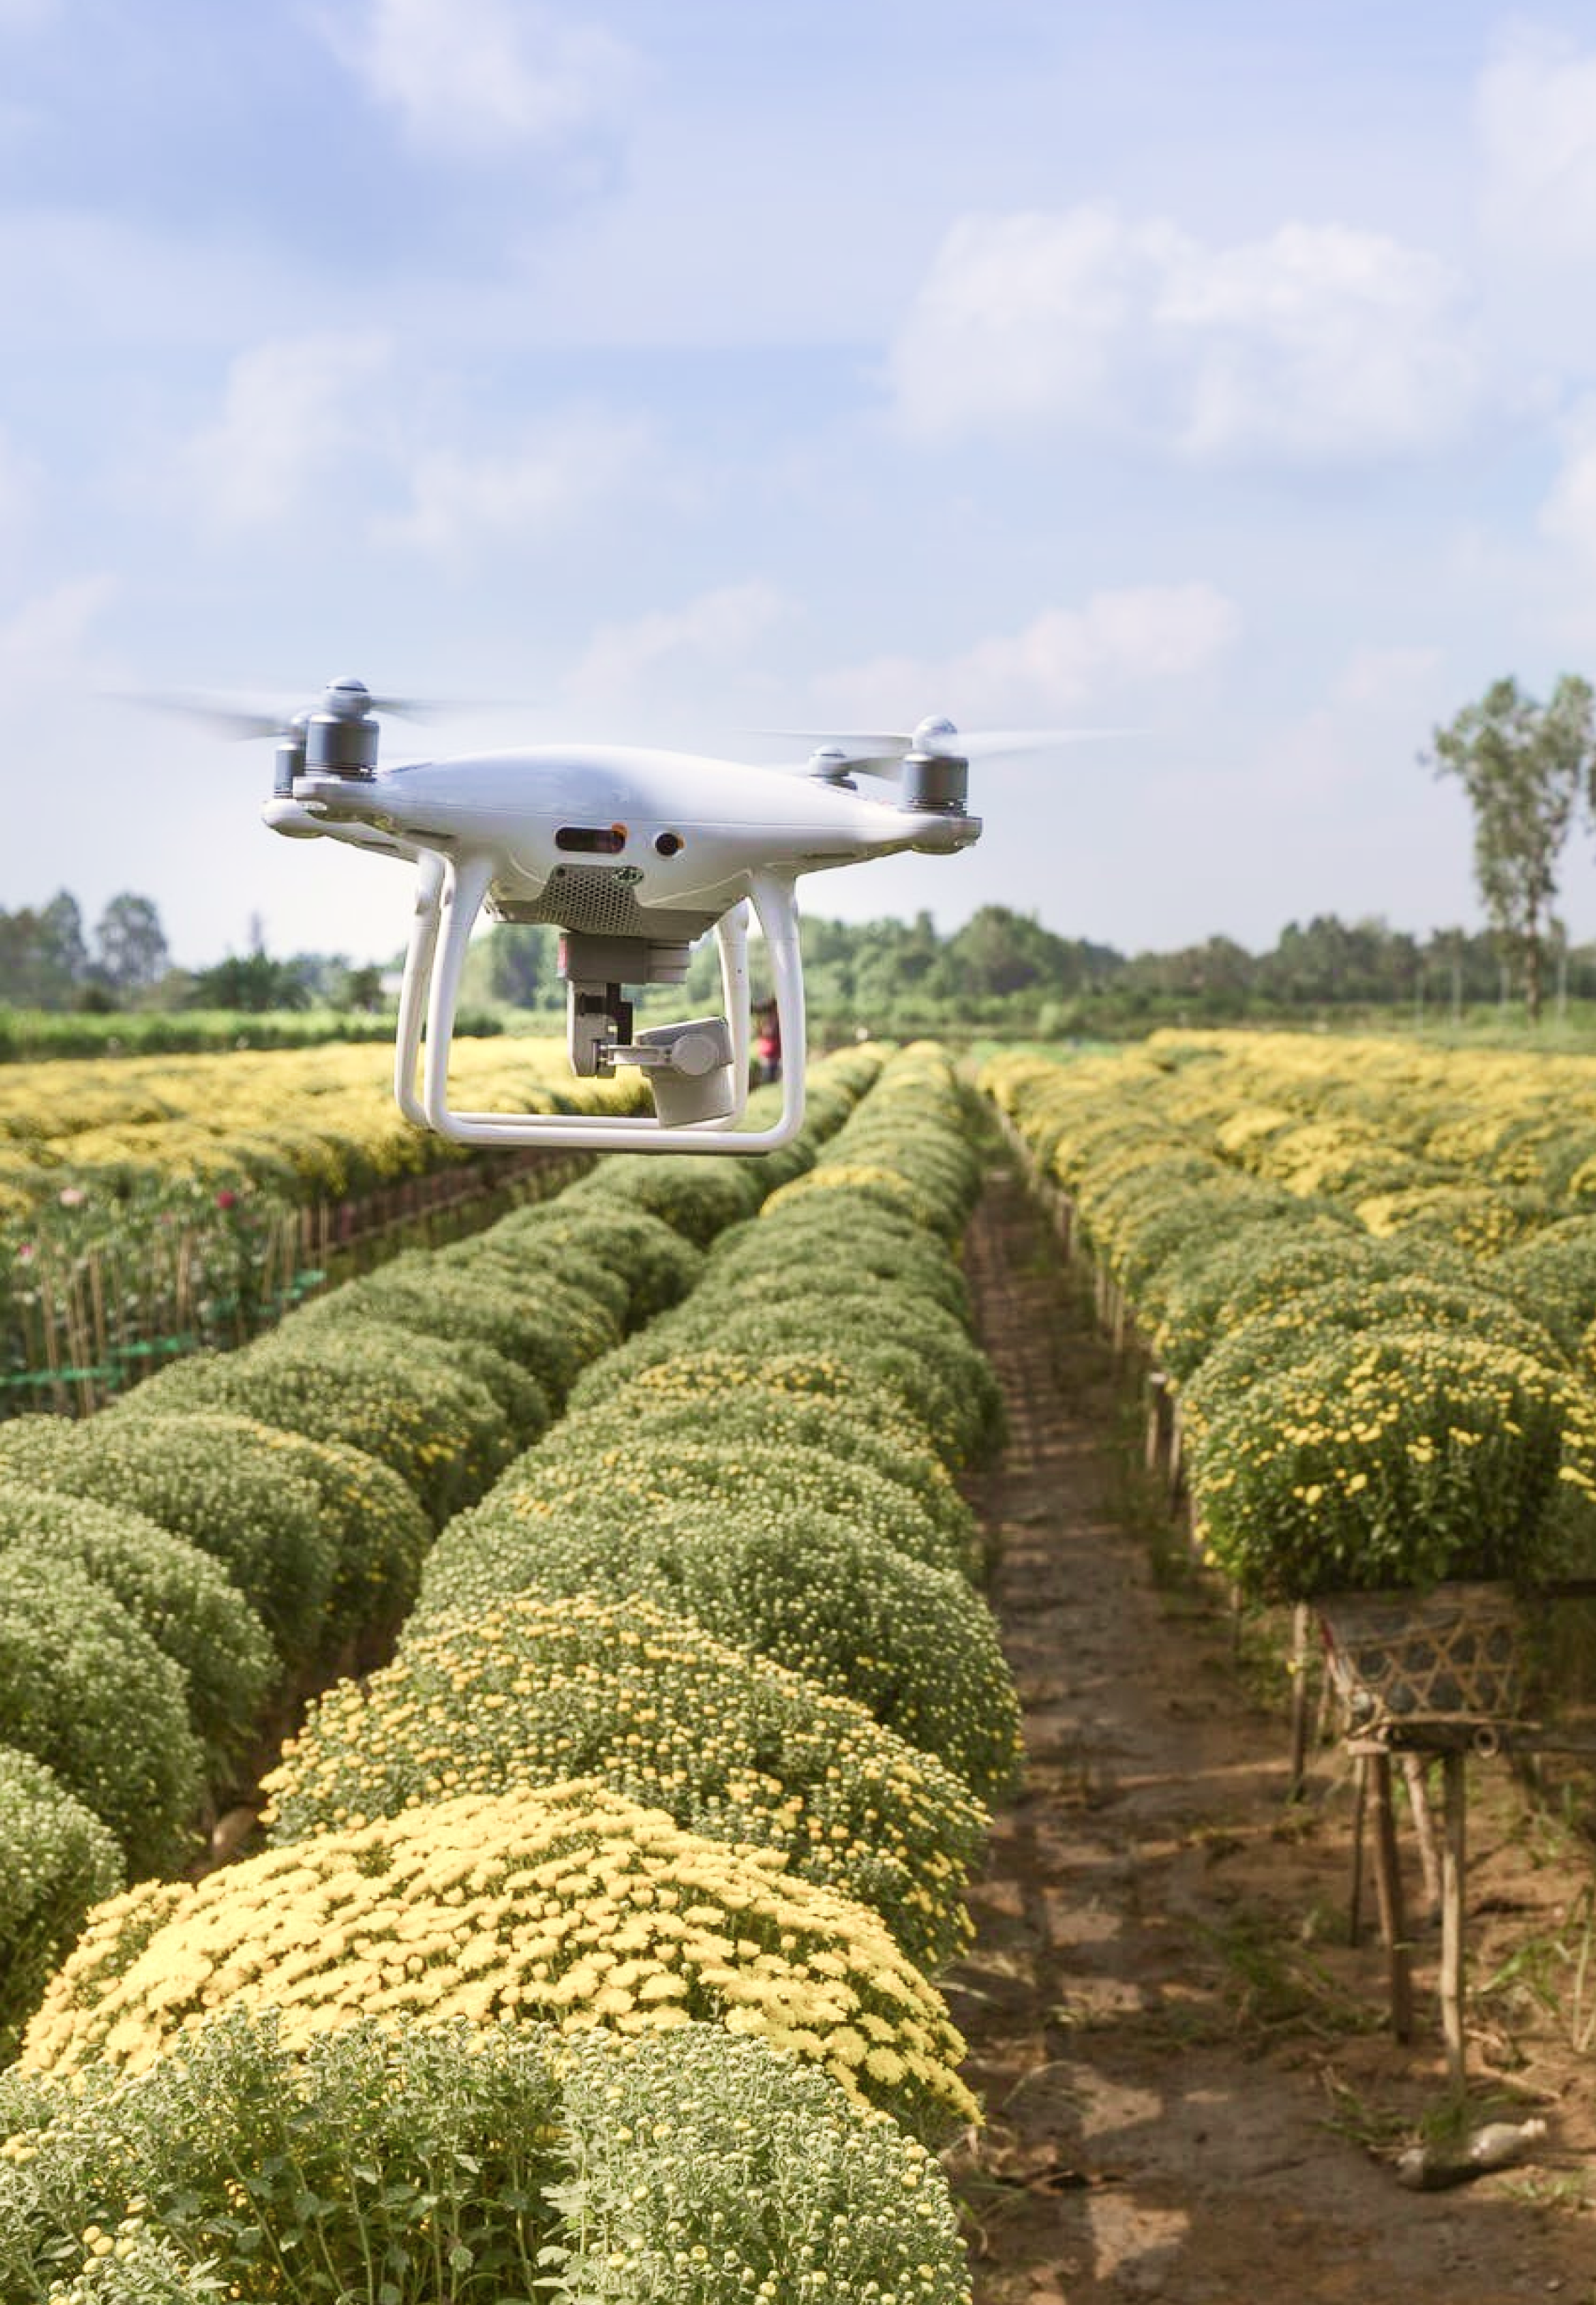 A drone hovering over rows of produce being grown in a field